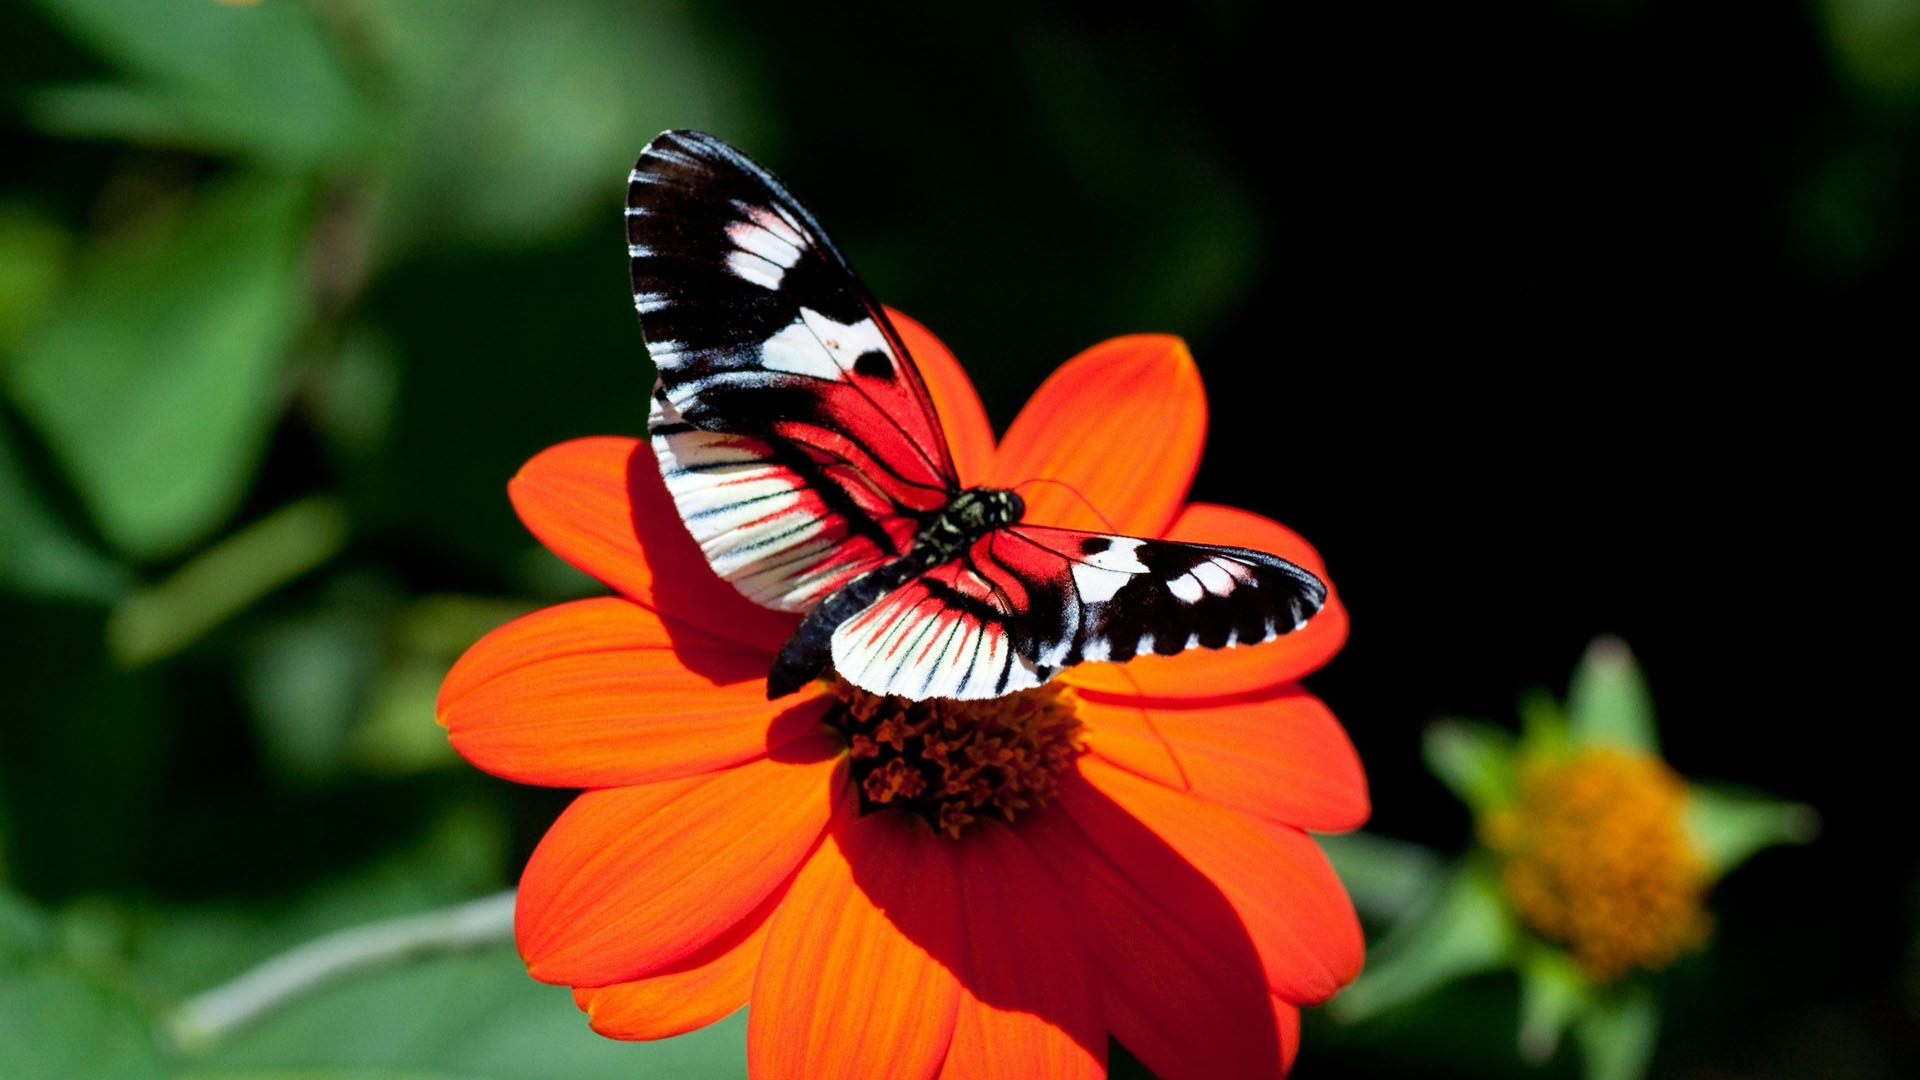 55 Colorful ButterflyHD Images Wallpapers Download 1920x1080